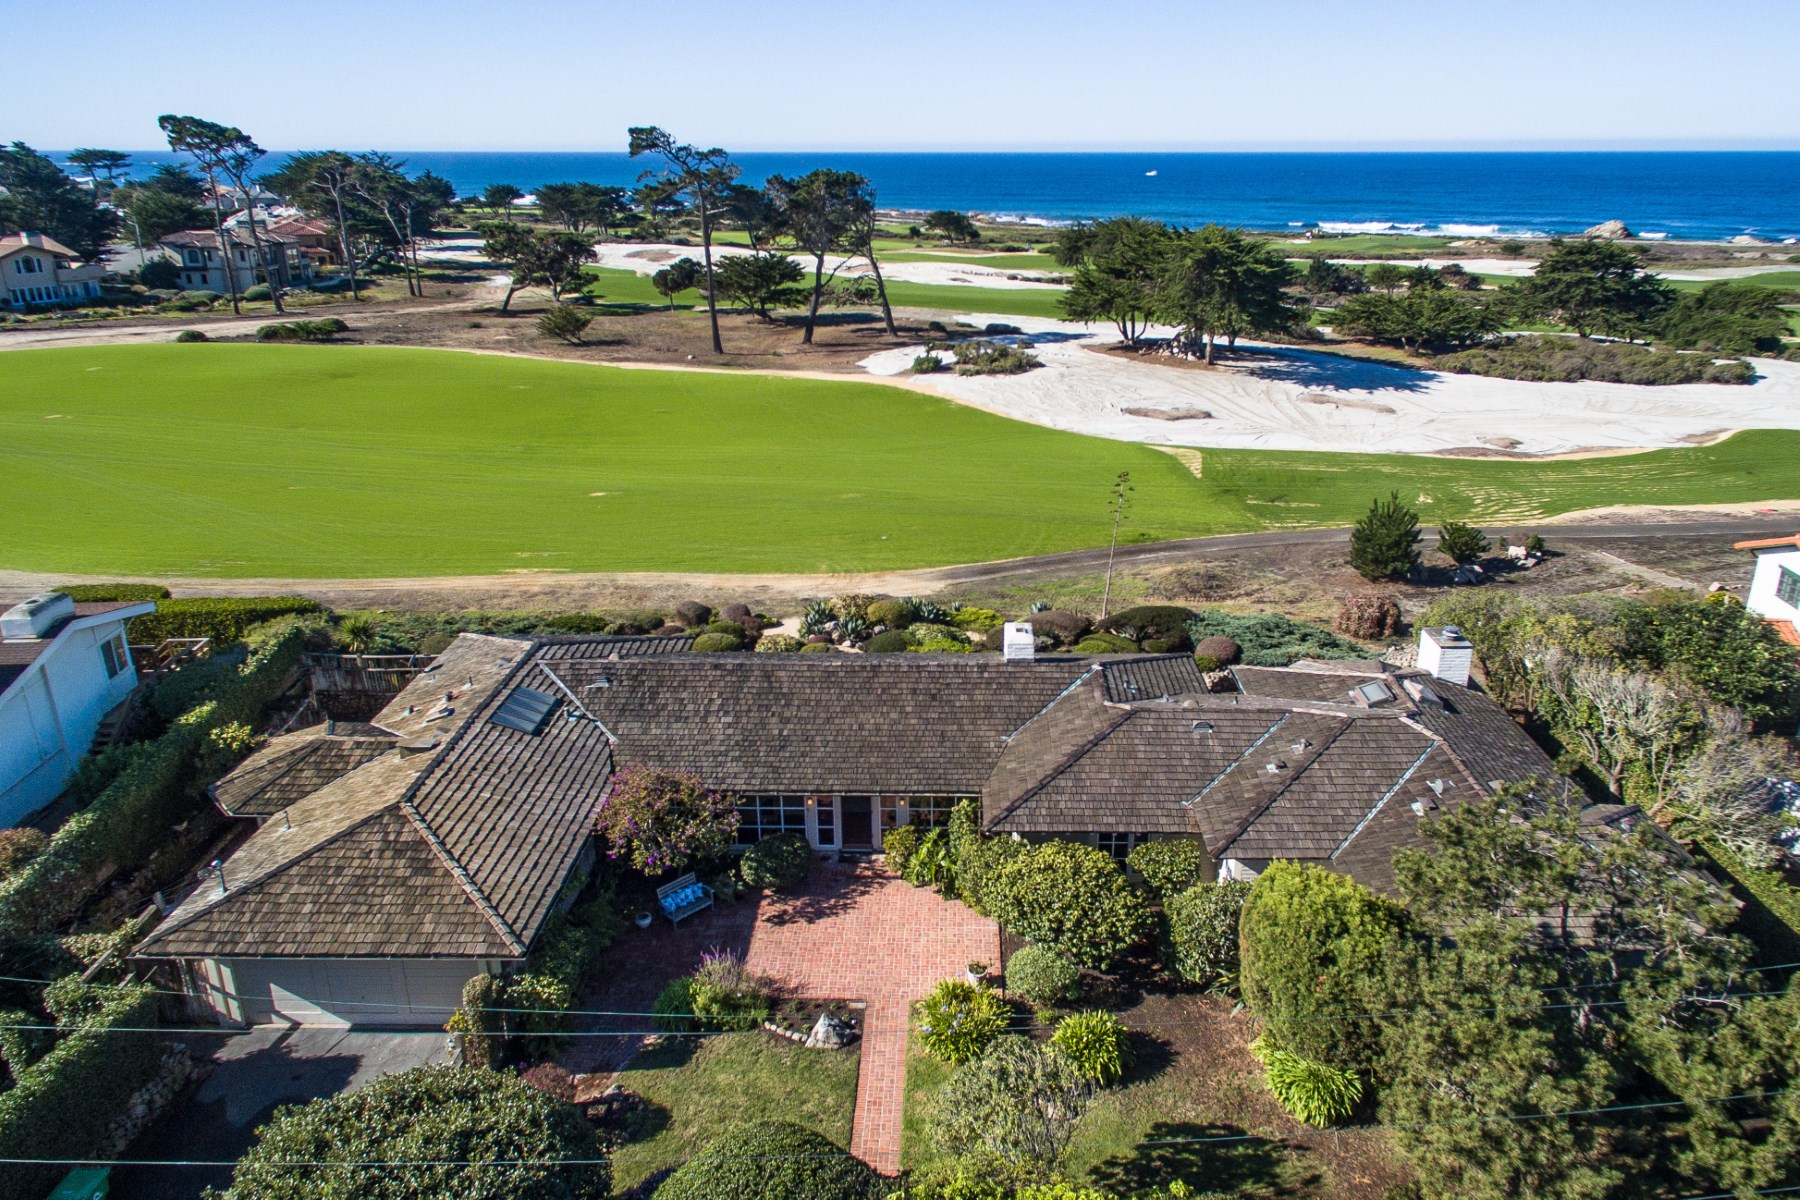 Single Family Home for Sale at First Time on the Market 958 Coral Drive Pebble Beach, California 93953 United States